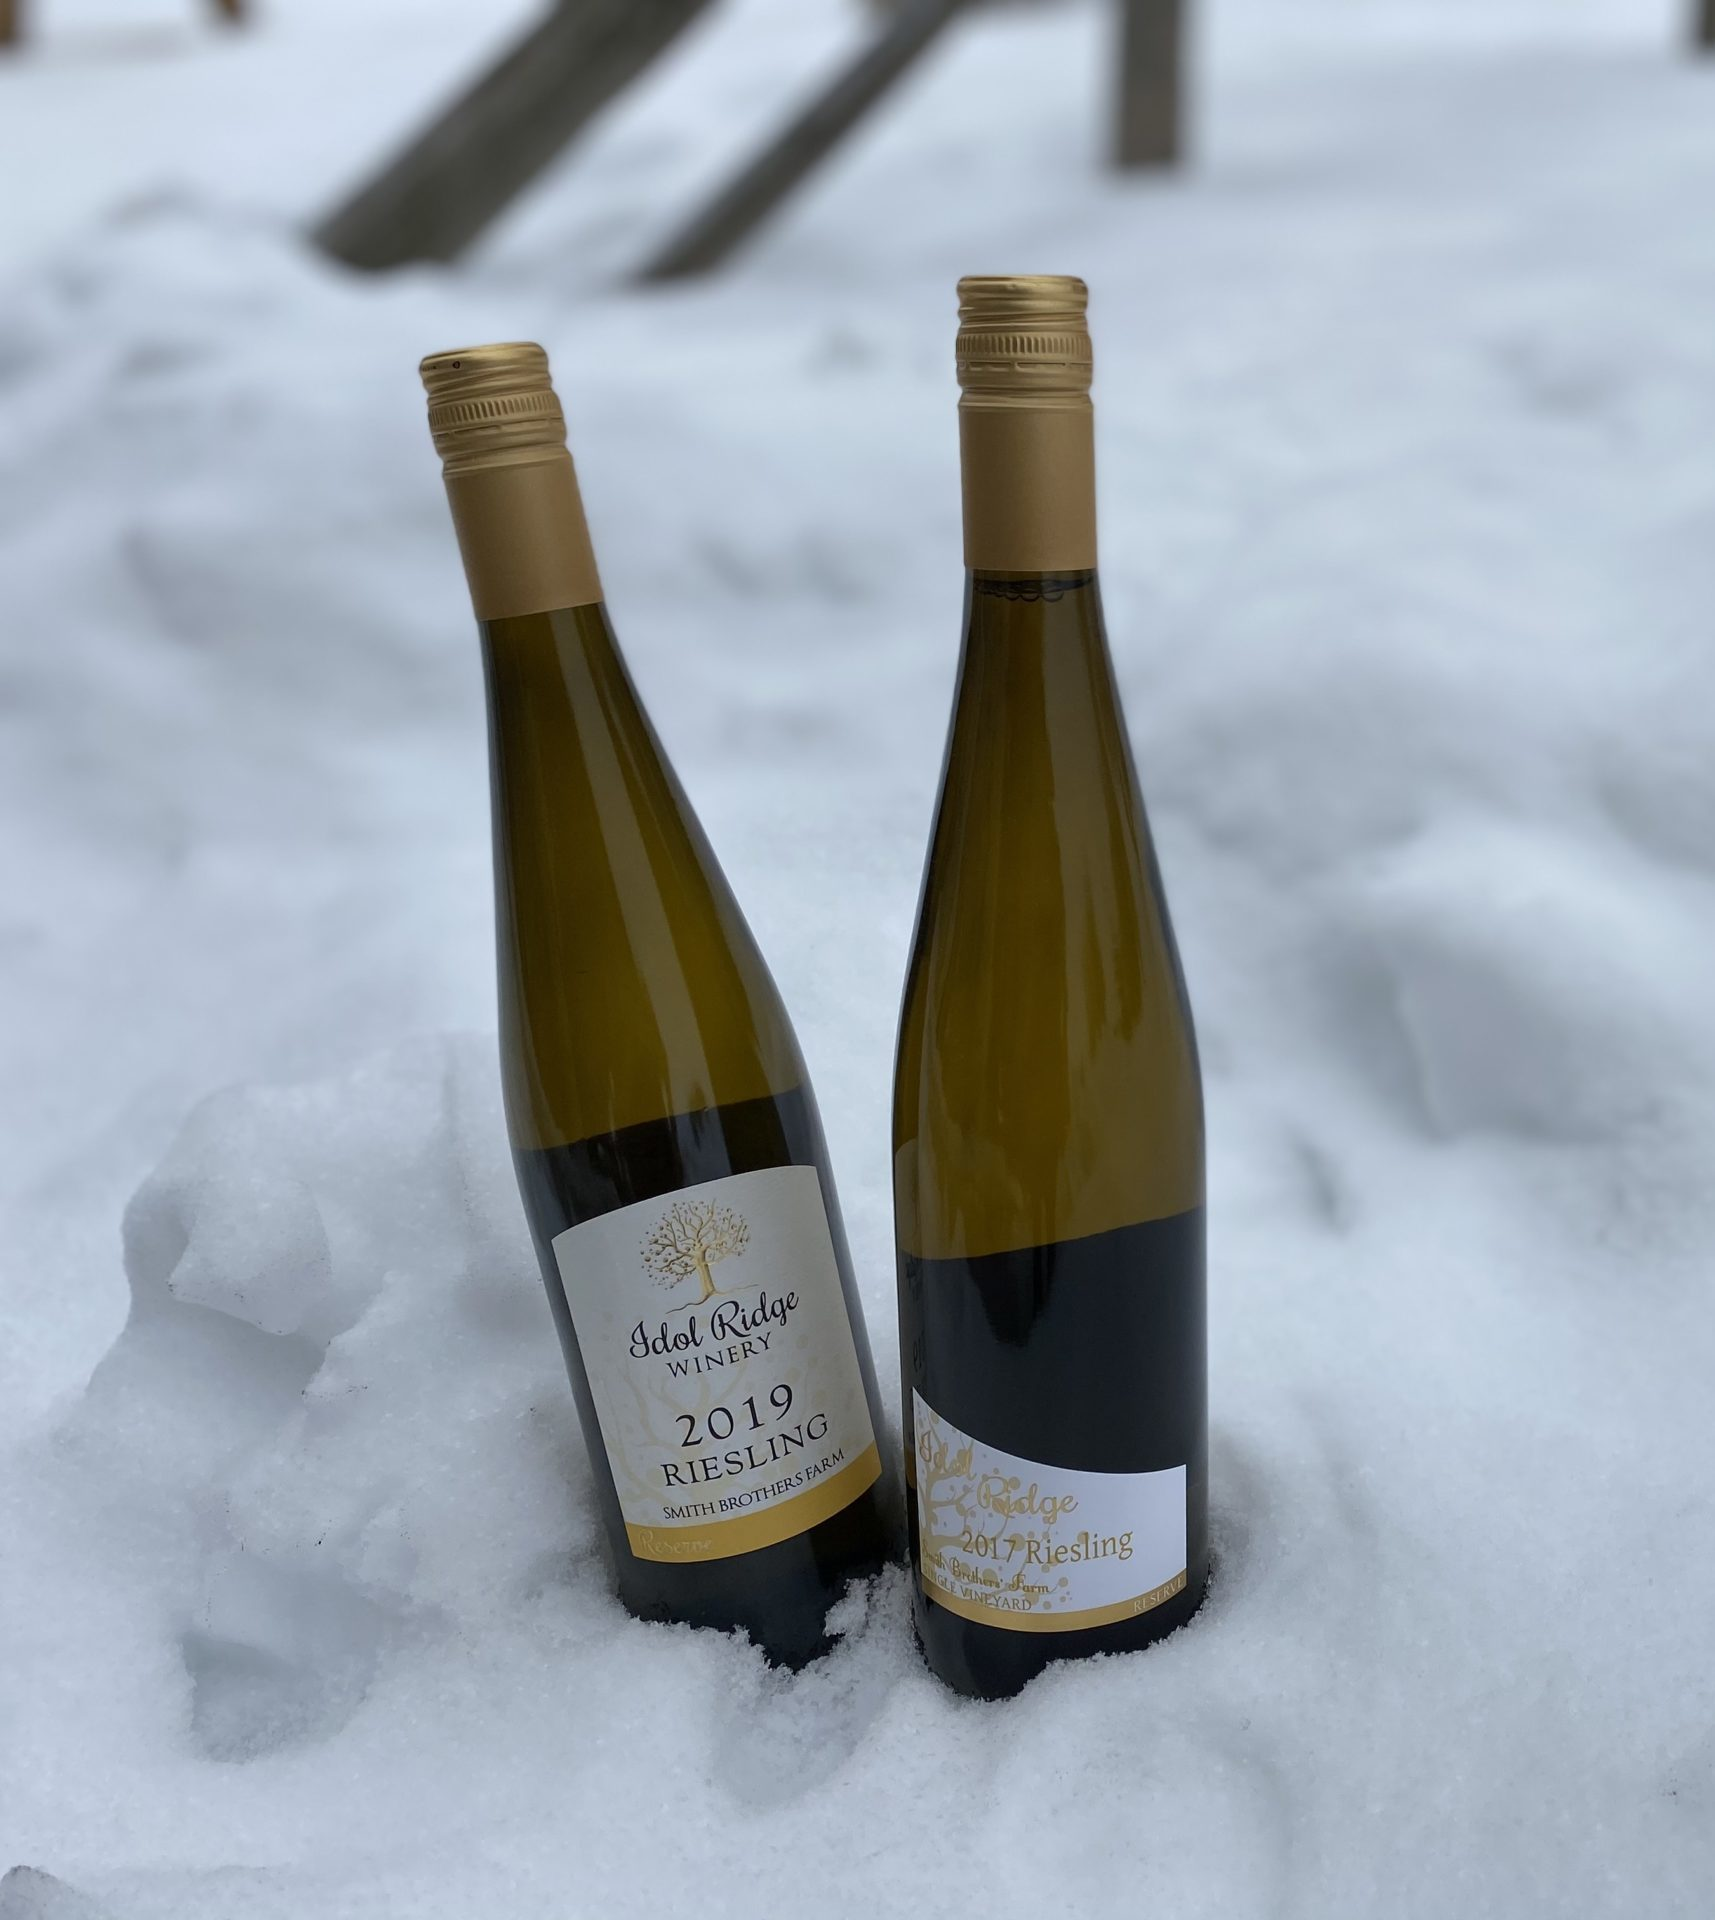 Two wines standing up in the snow